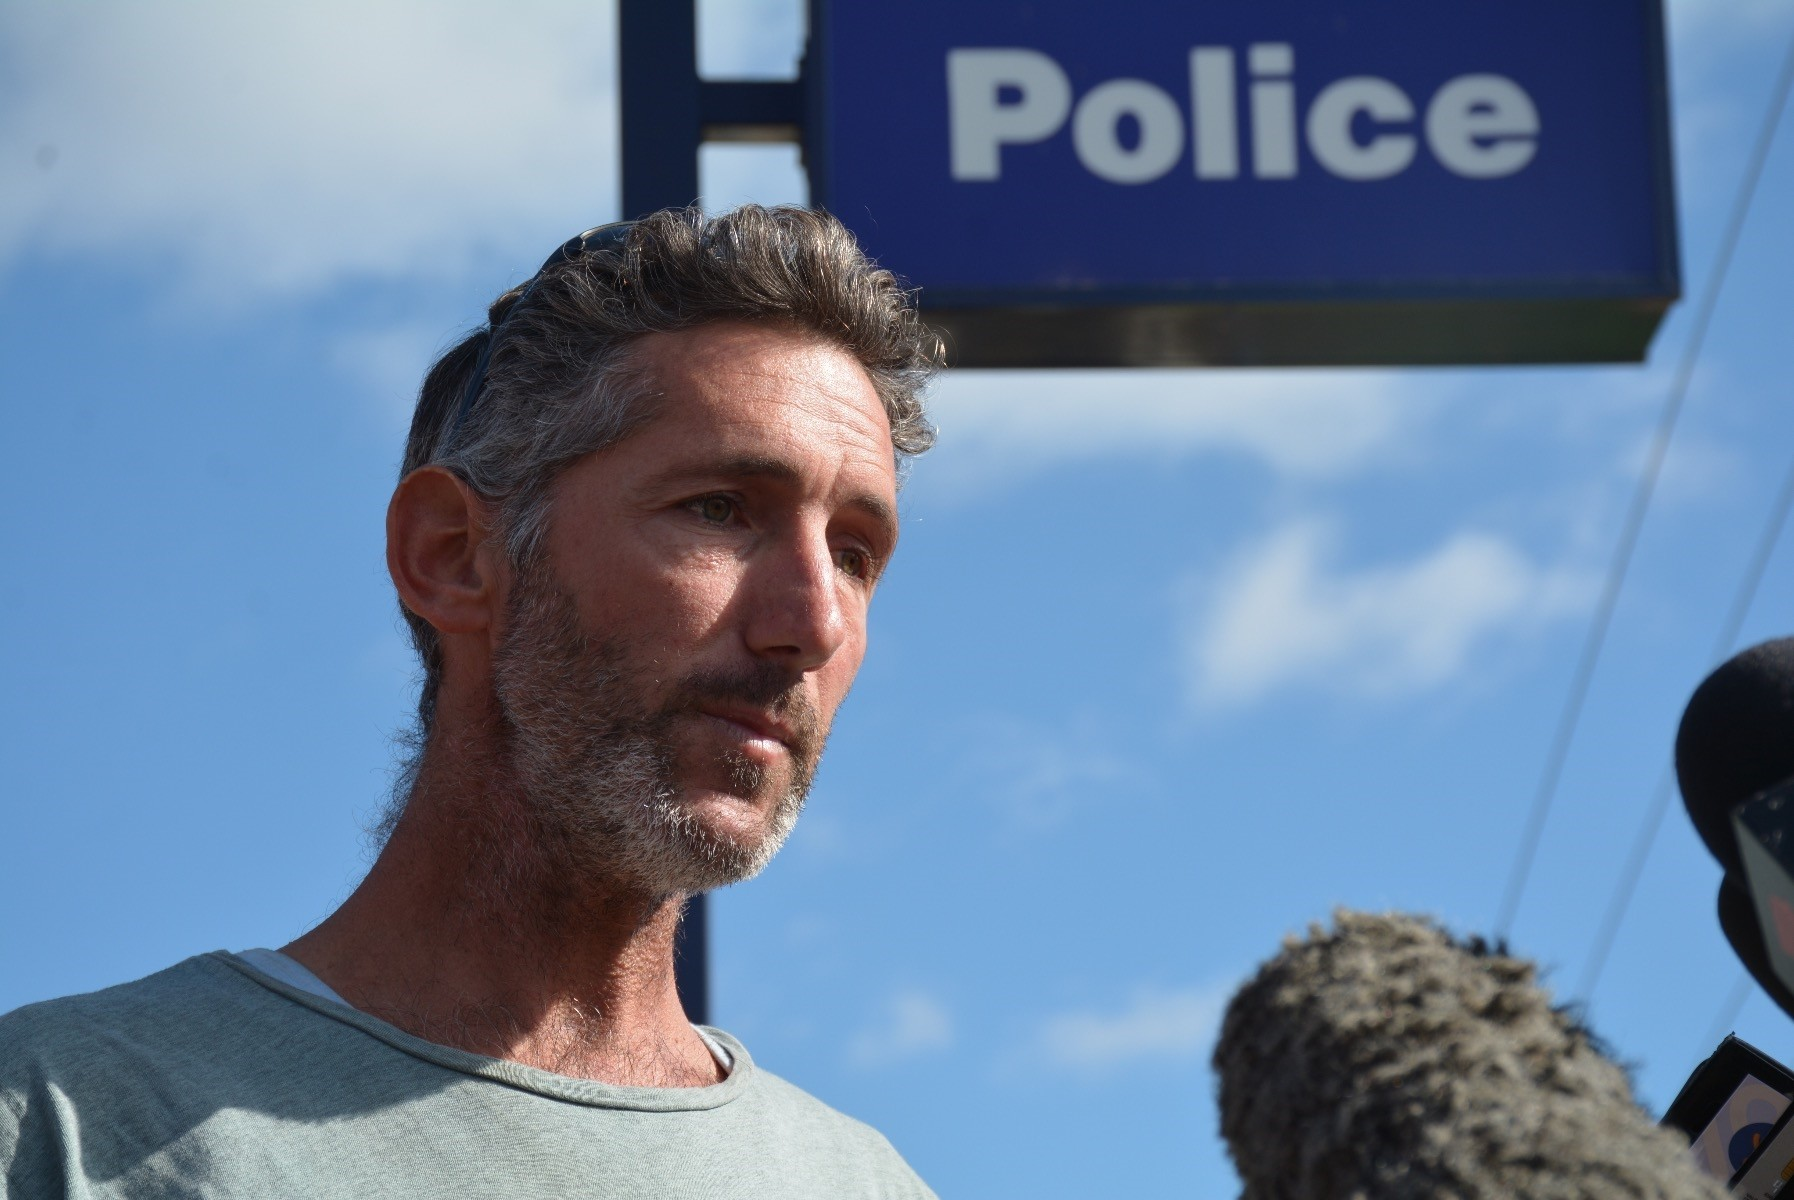 Aaron Cockman, the father of four children killed by their grandfather addresses the media in Margaret River, WA, May 13.